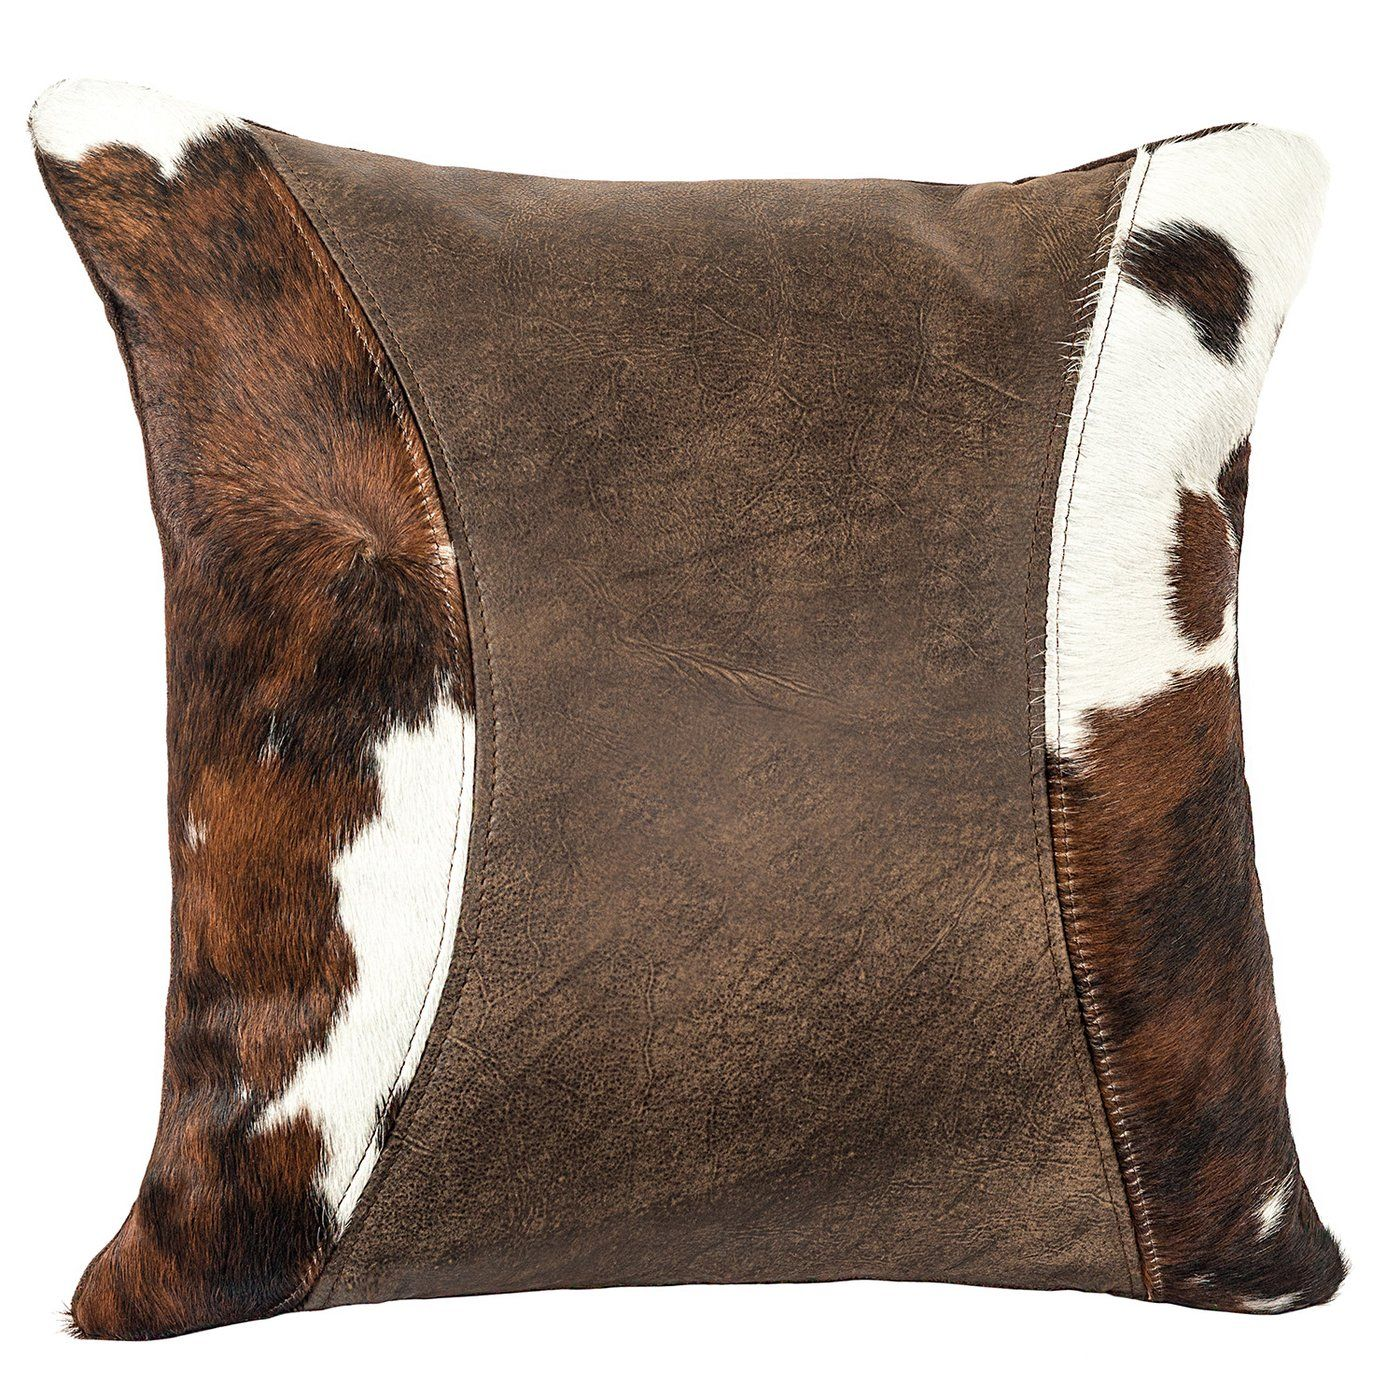 Outlaw Pillow - Timber and Hair on Hide